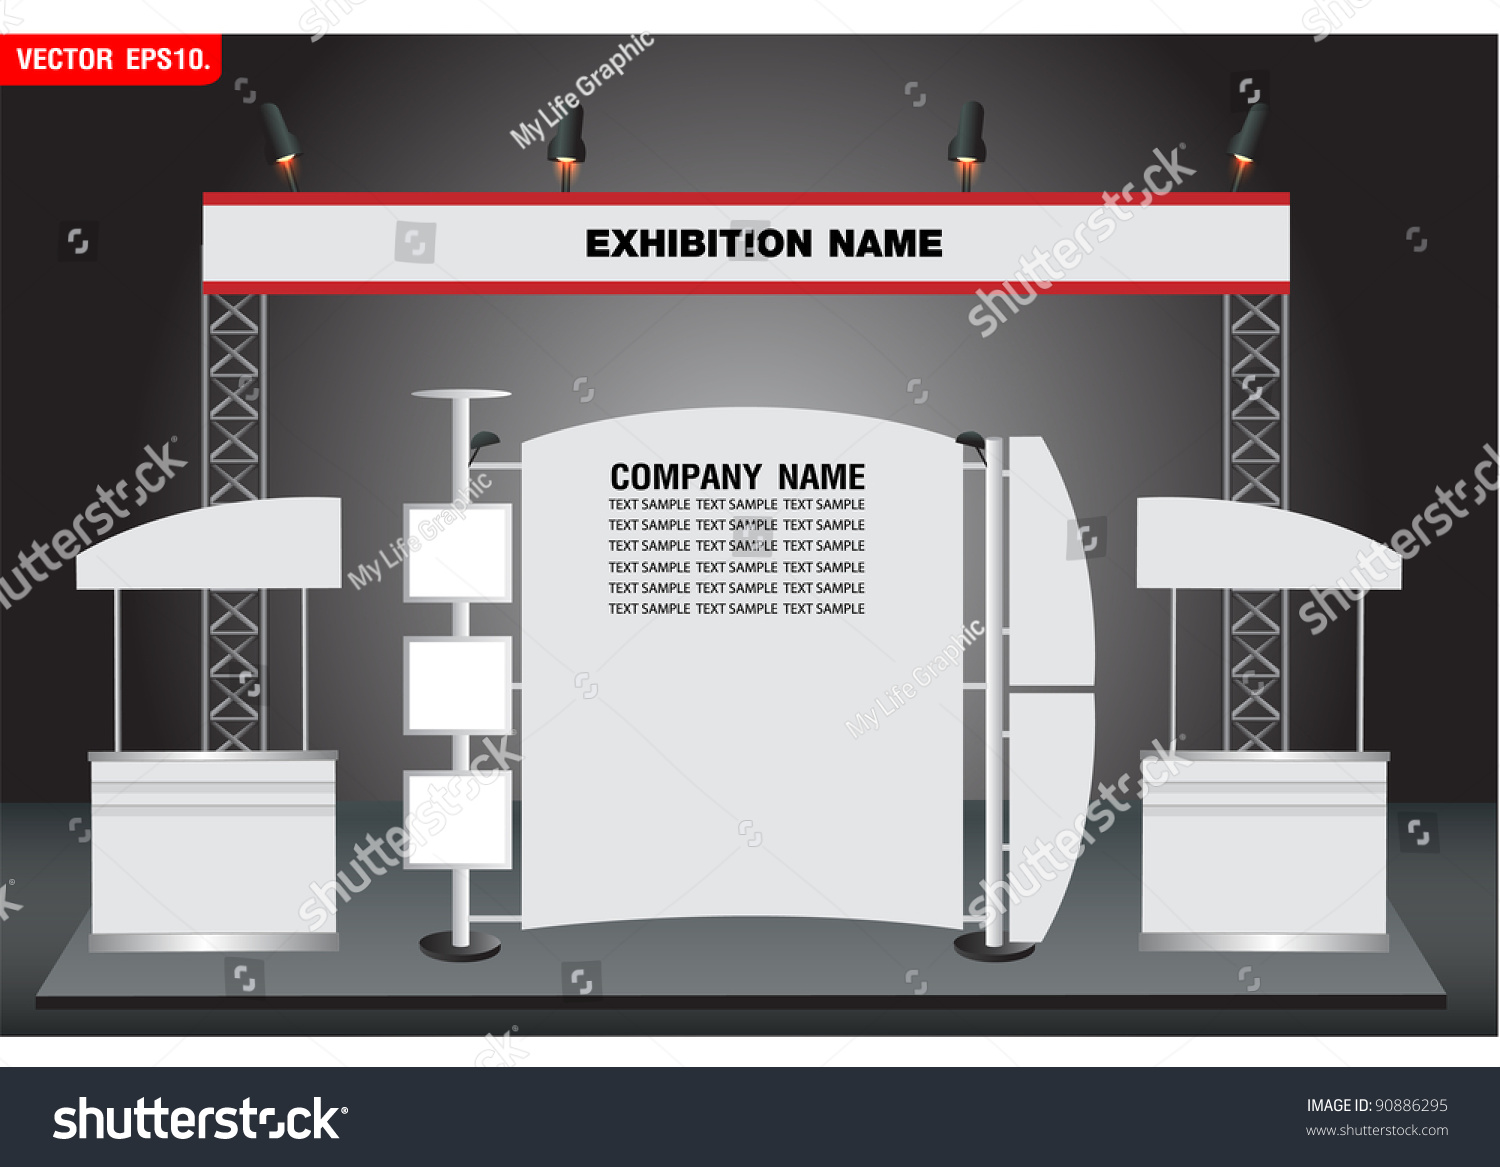 Simple Exhibition Stand Vector : Blank trade exhibition and promotion stand vector